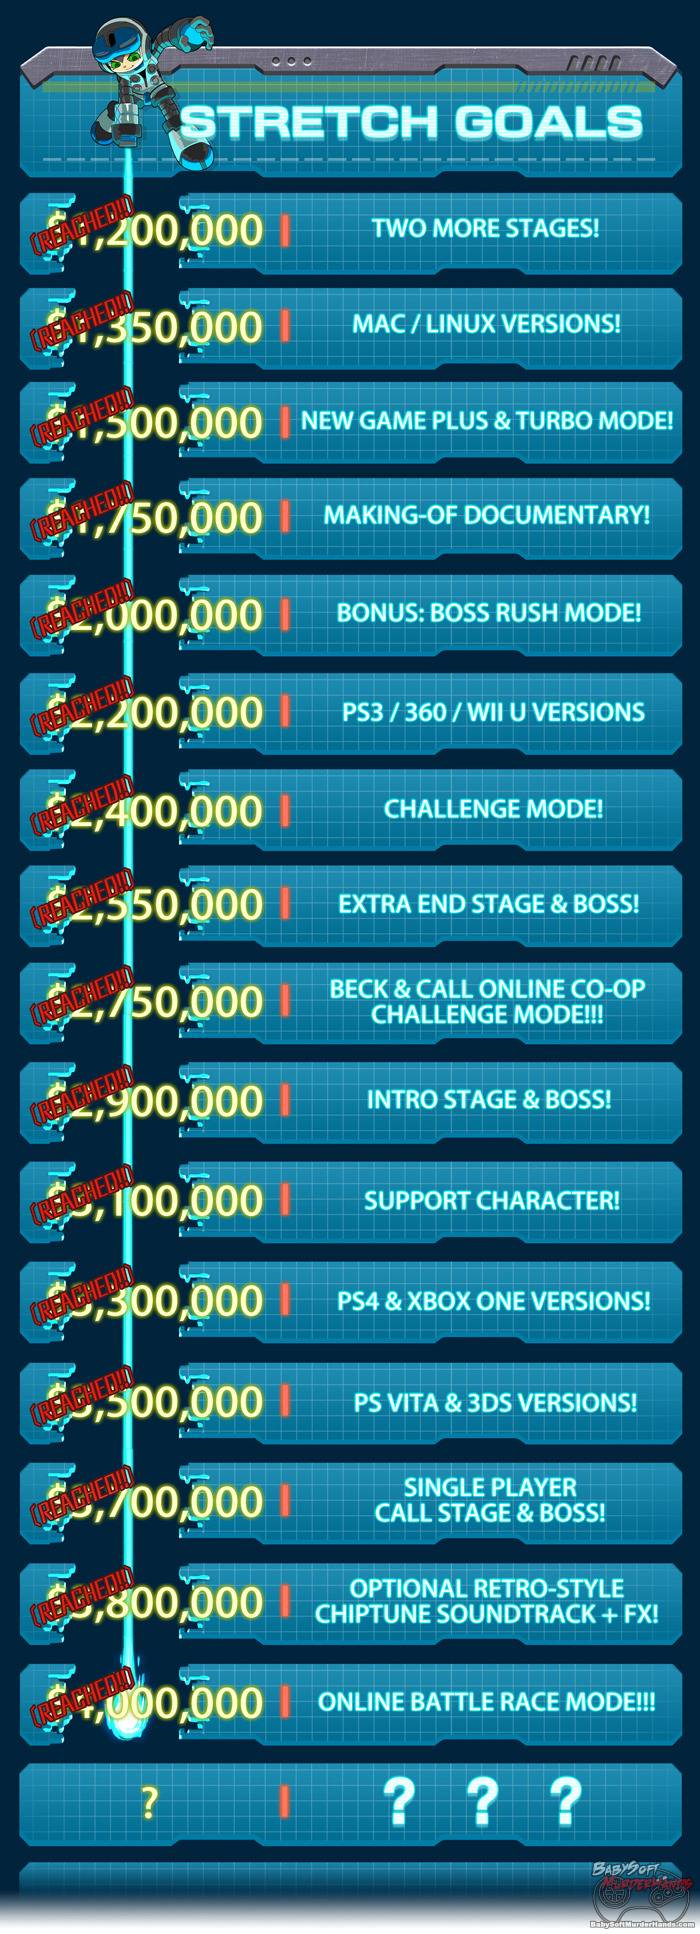 Mighty No 9 Stretch Goals